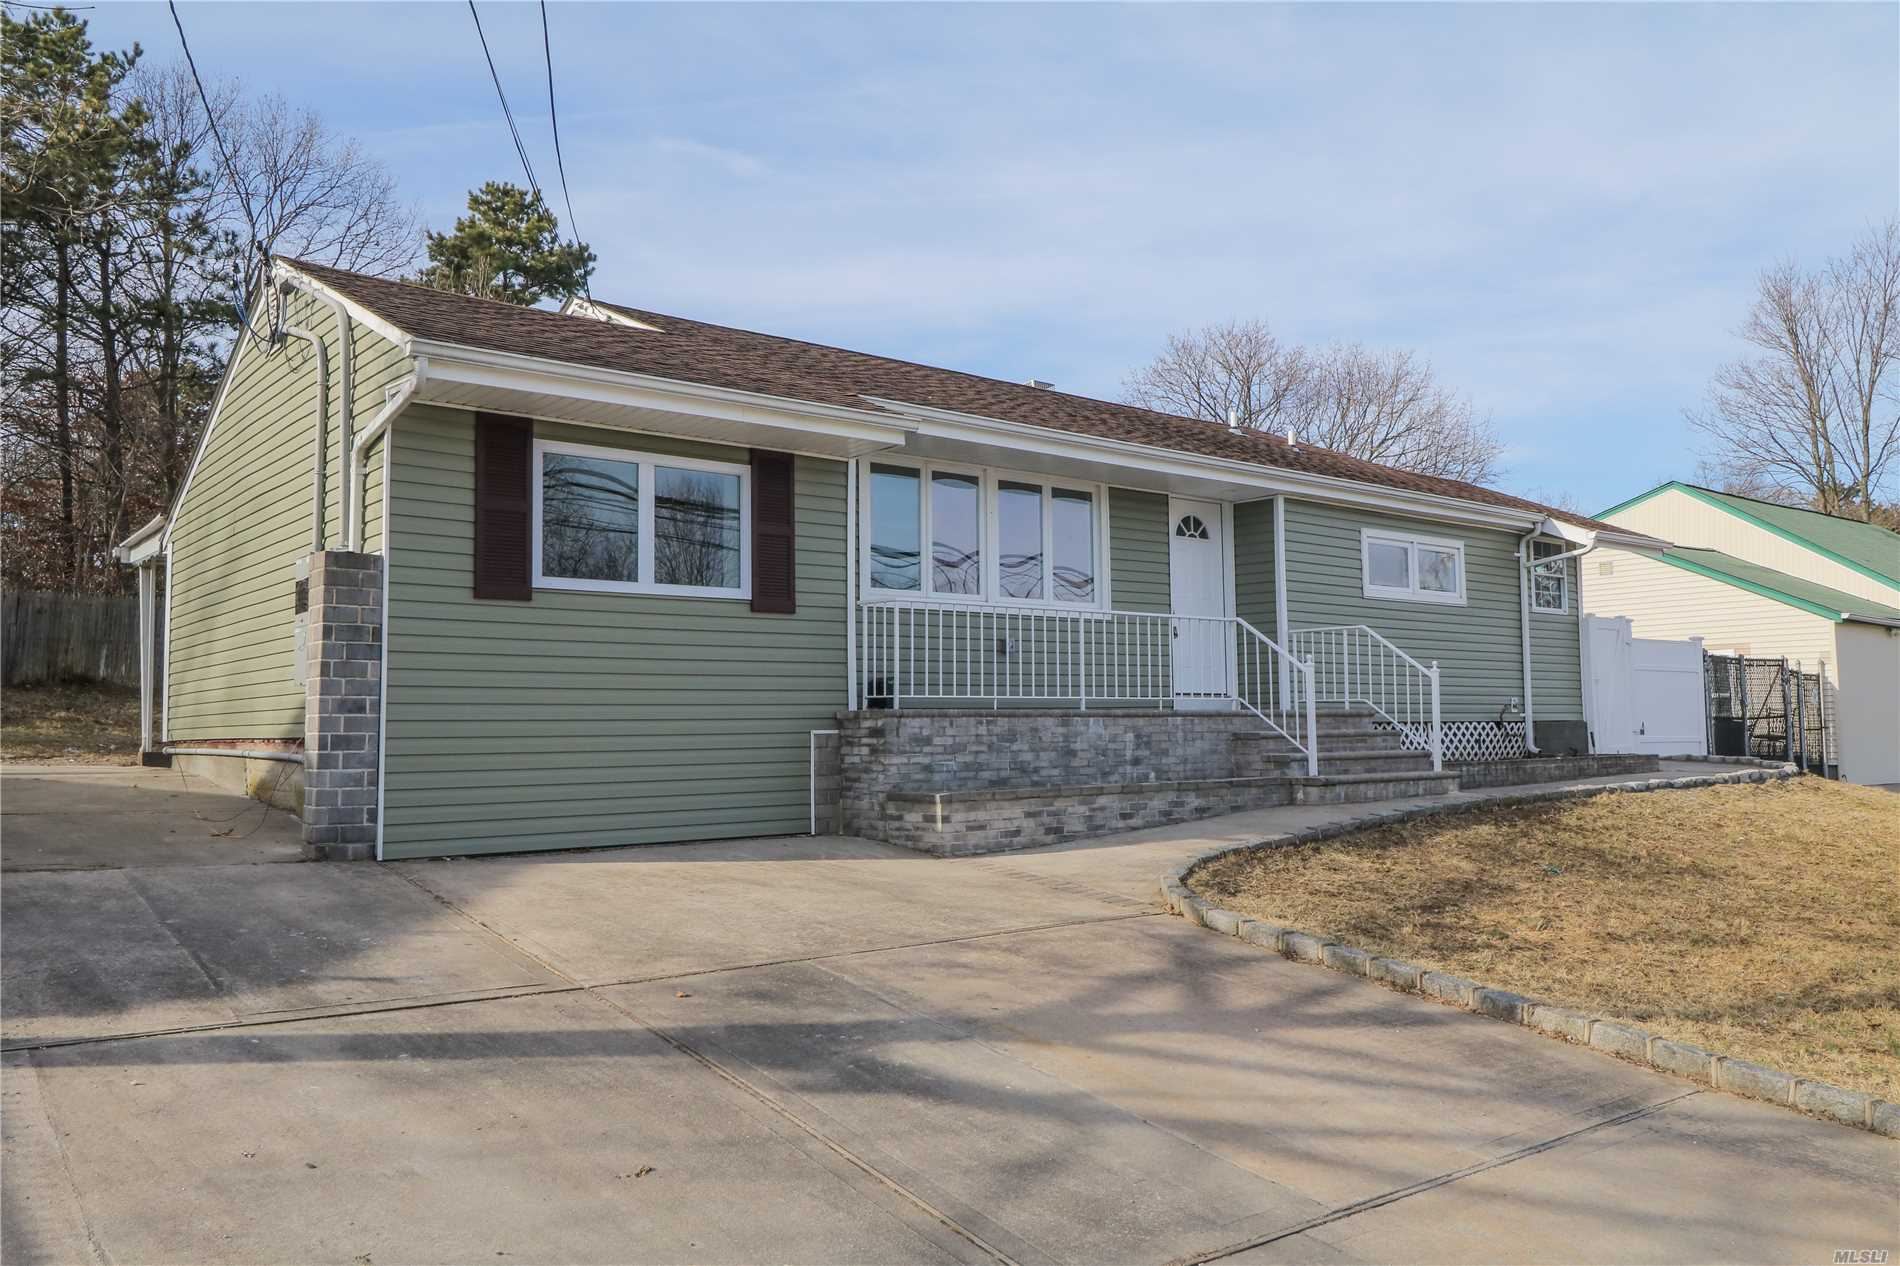 Newly Renovated 4 Bed, 2 Bath Home With Full Finished Basement. Property Is Equipped With Hardwood Floors, Brand New Kitchen And Stainless Steel Appliances.